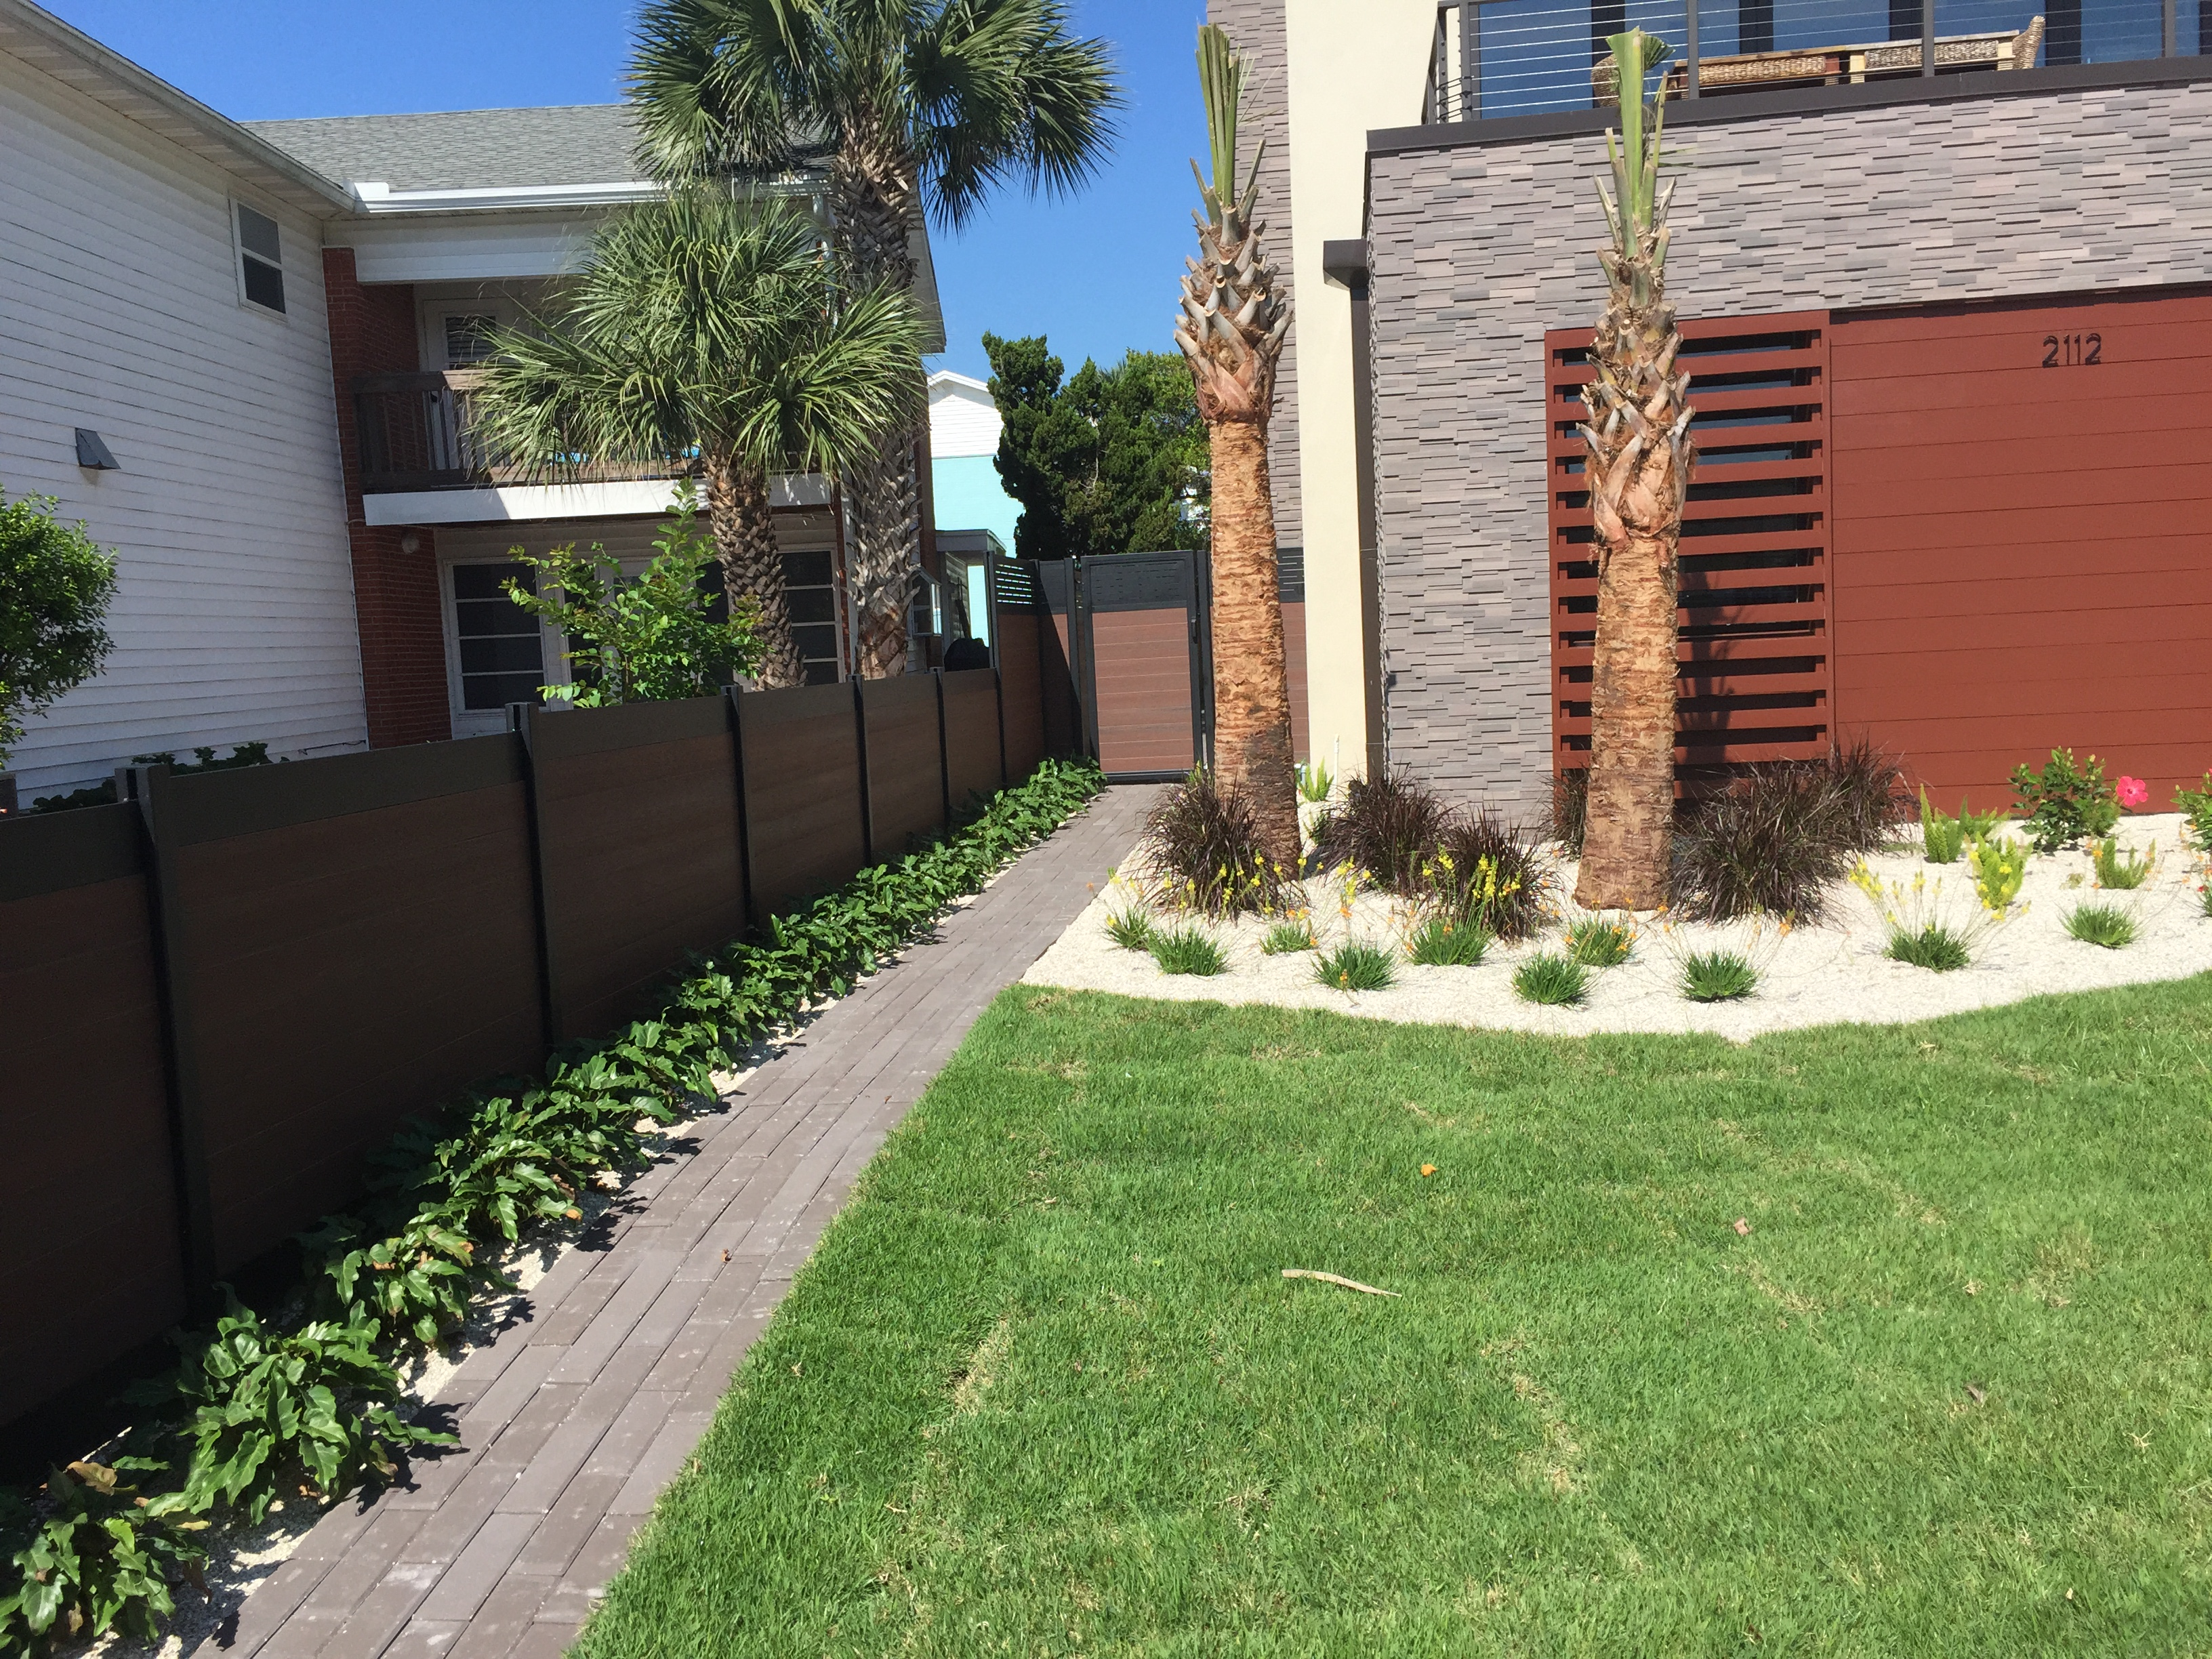 Infinity Euro - Yard, Deck and Patio Installs